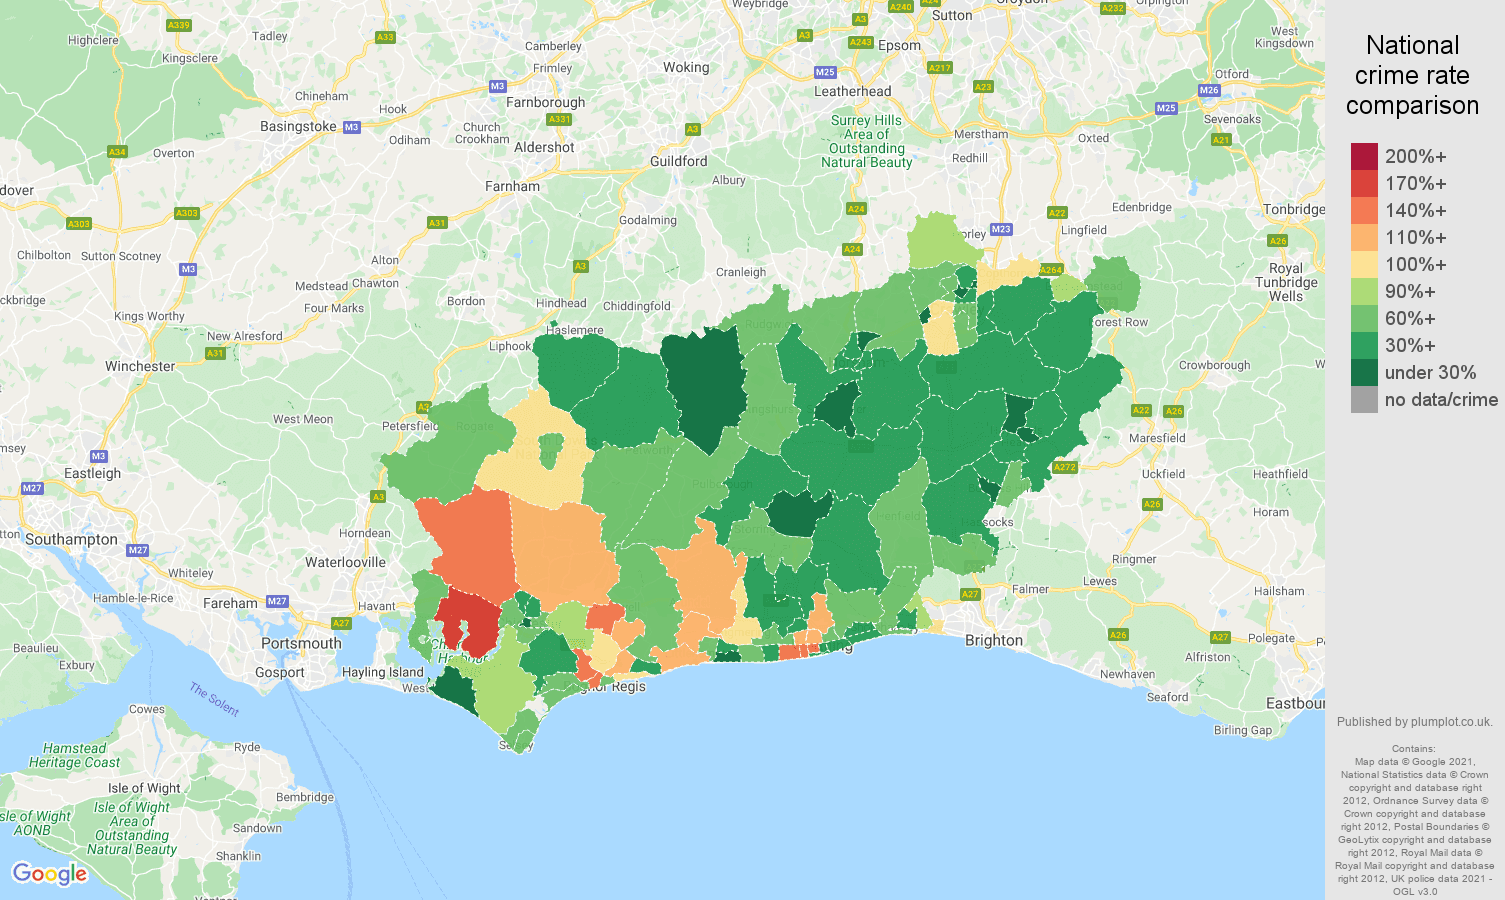 West Sussex vehicle crime rate comparison map